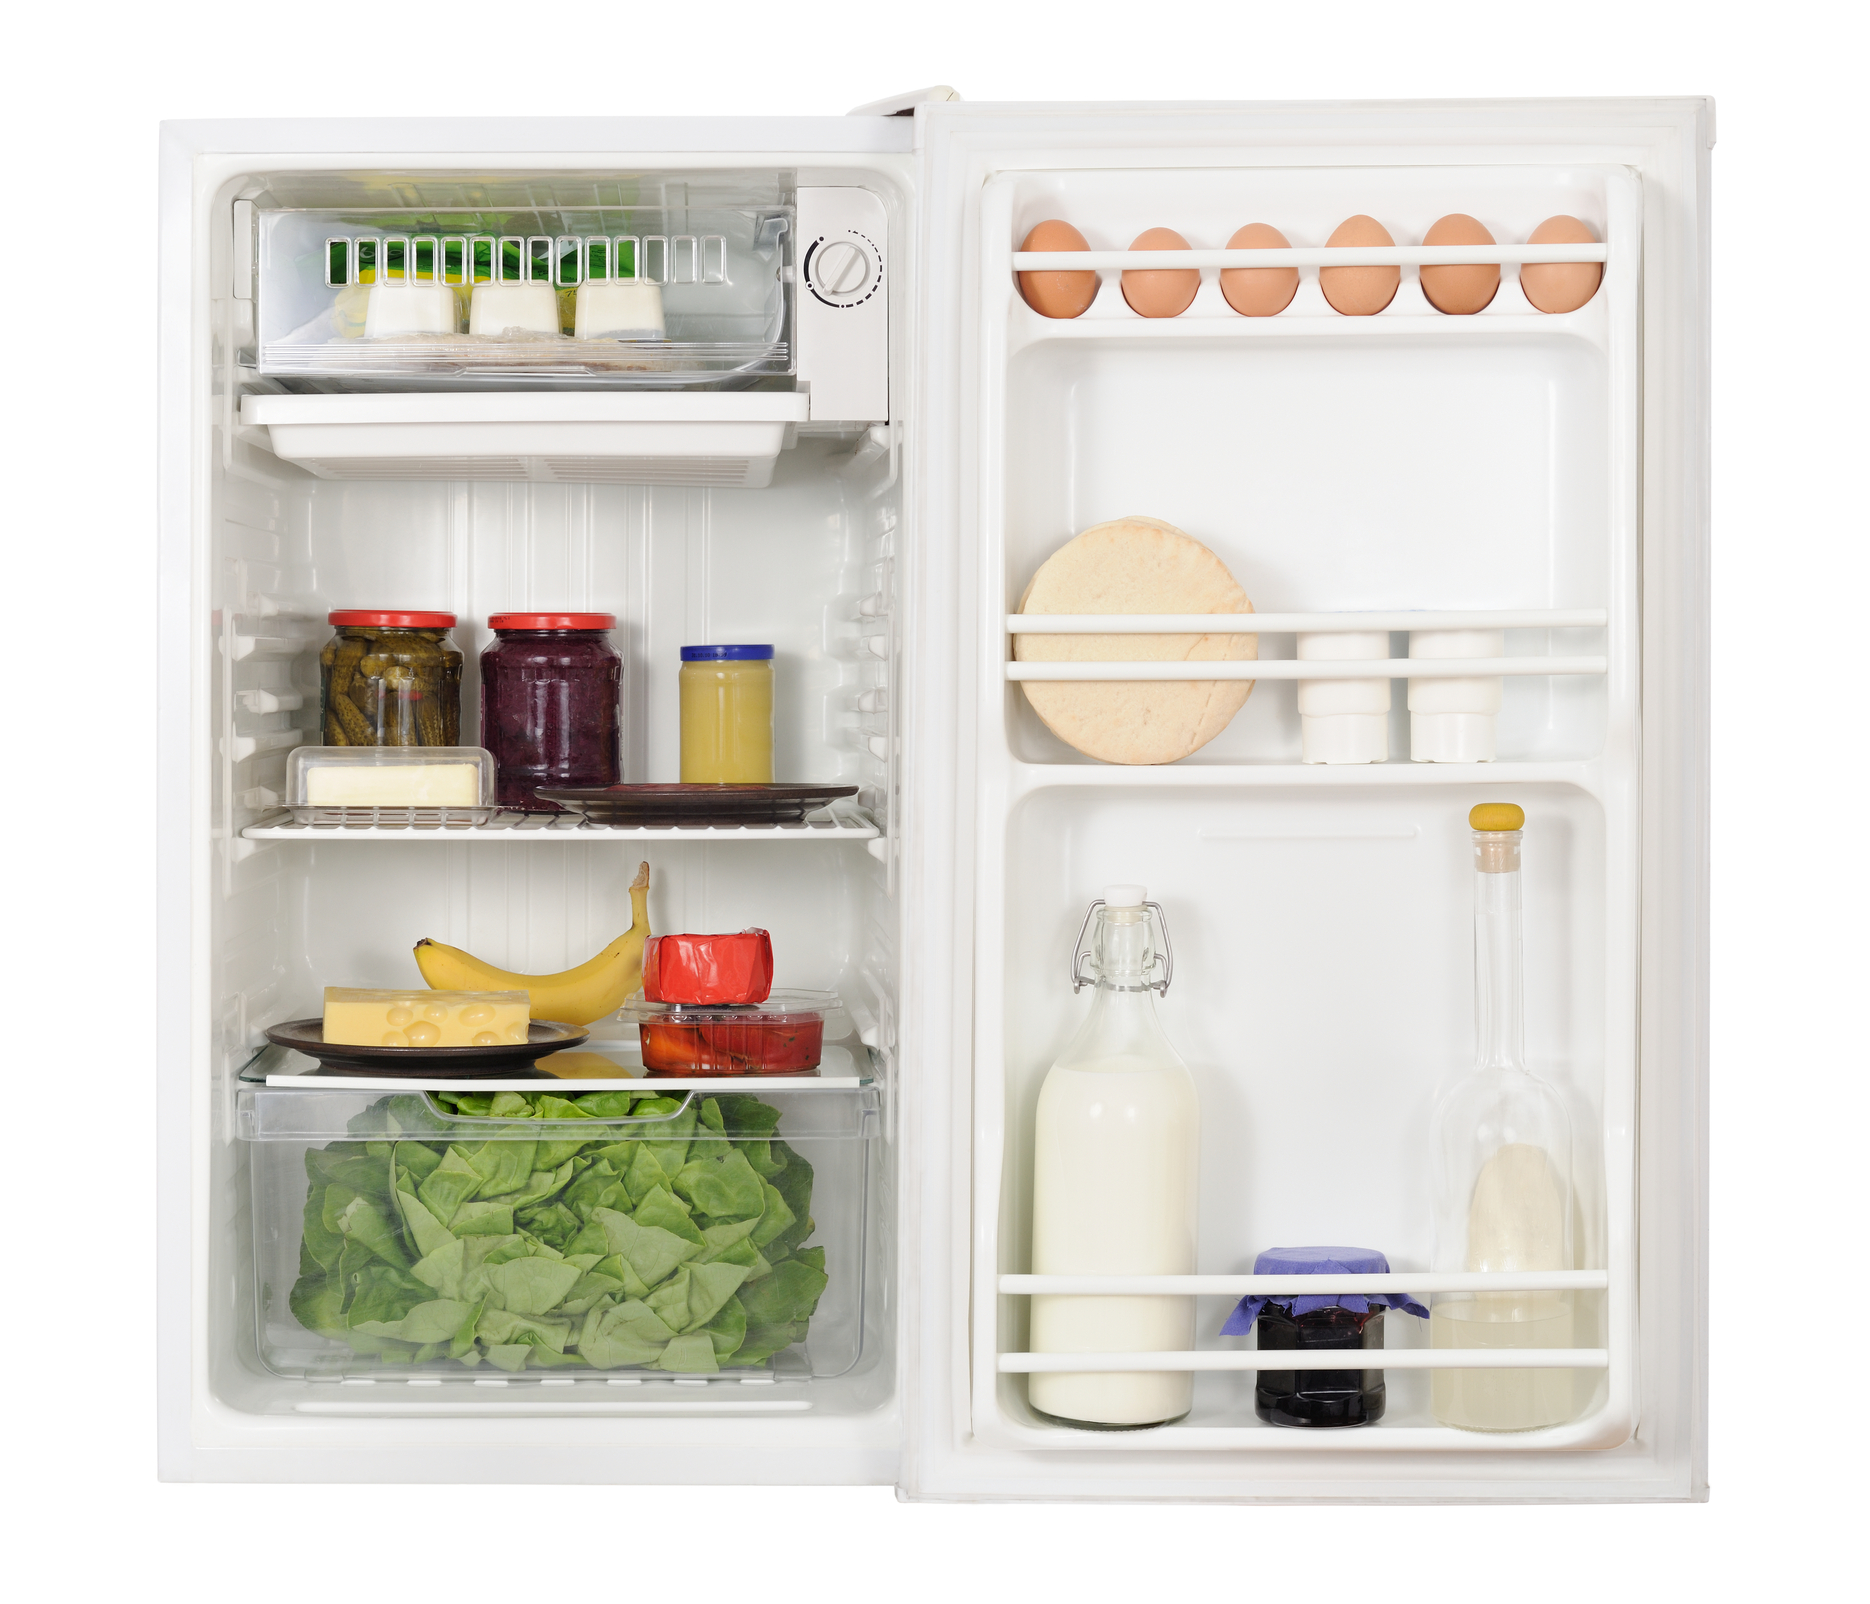 What does your Acupuncturist Eat? A Look Inside Amanda's refrigerator